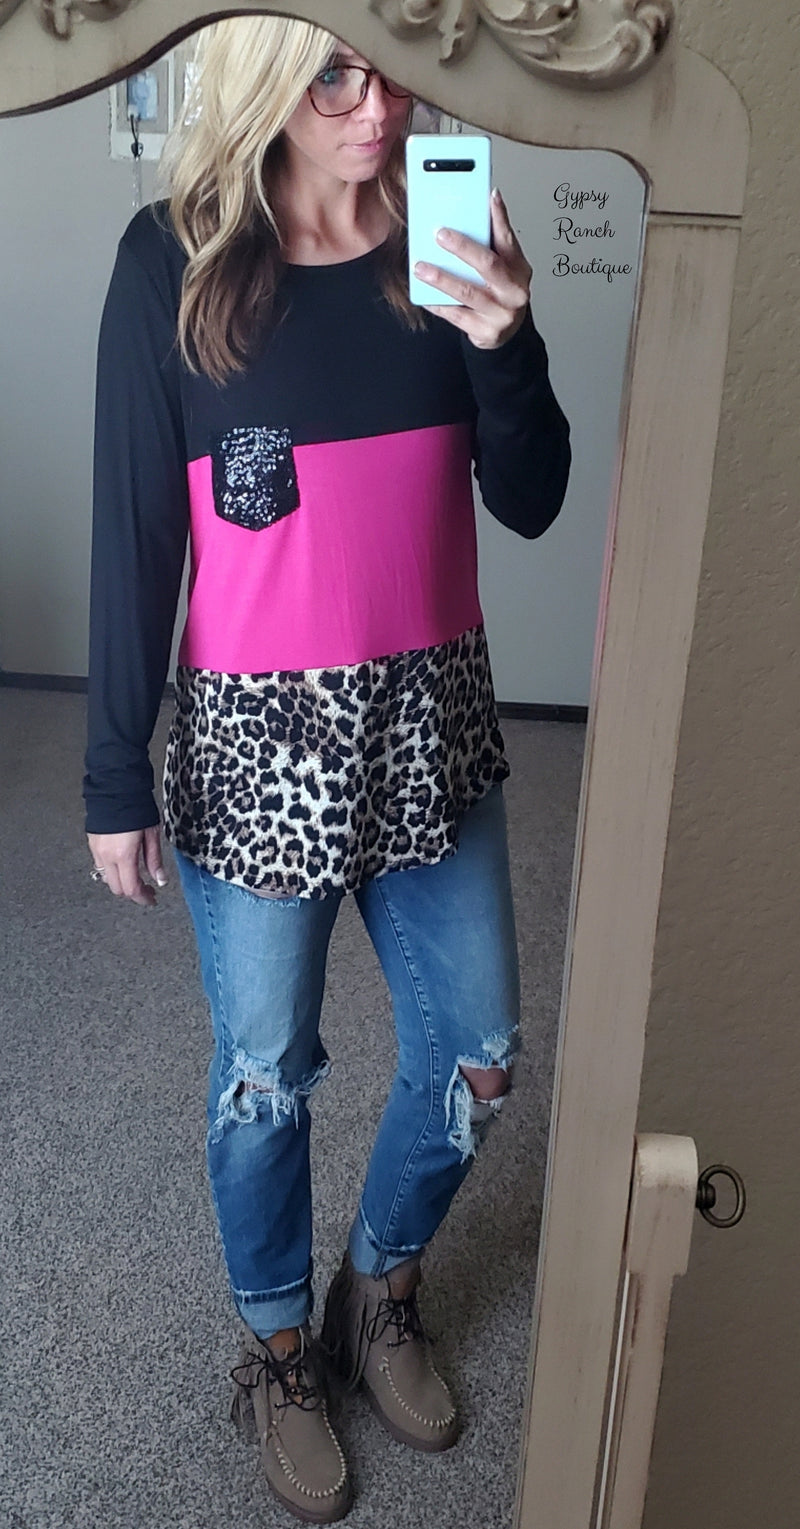 Avery Pink & Black Leopard Top - Also in Plus Size